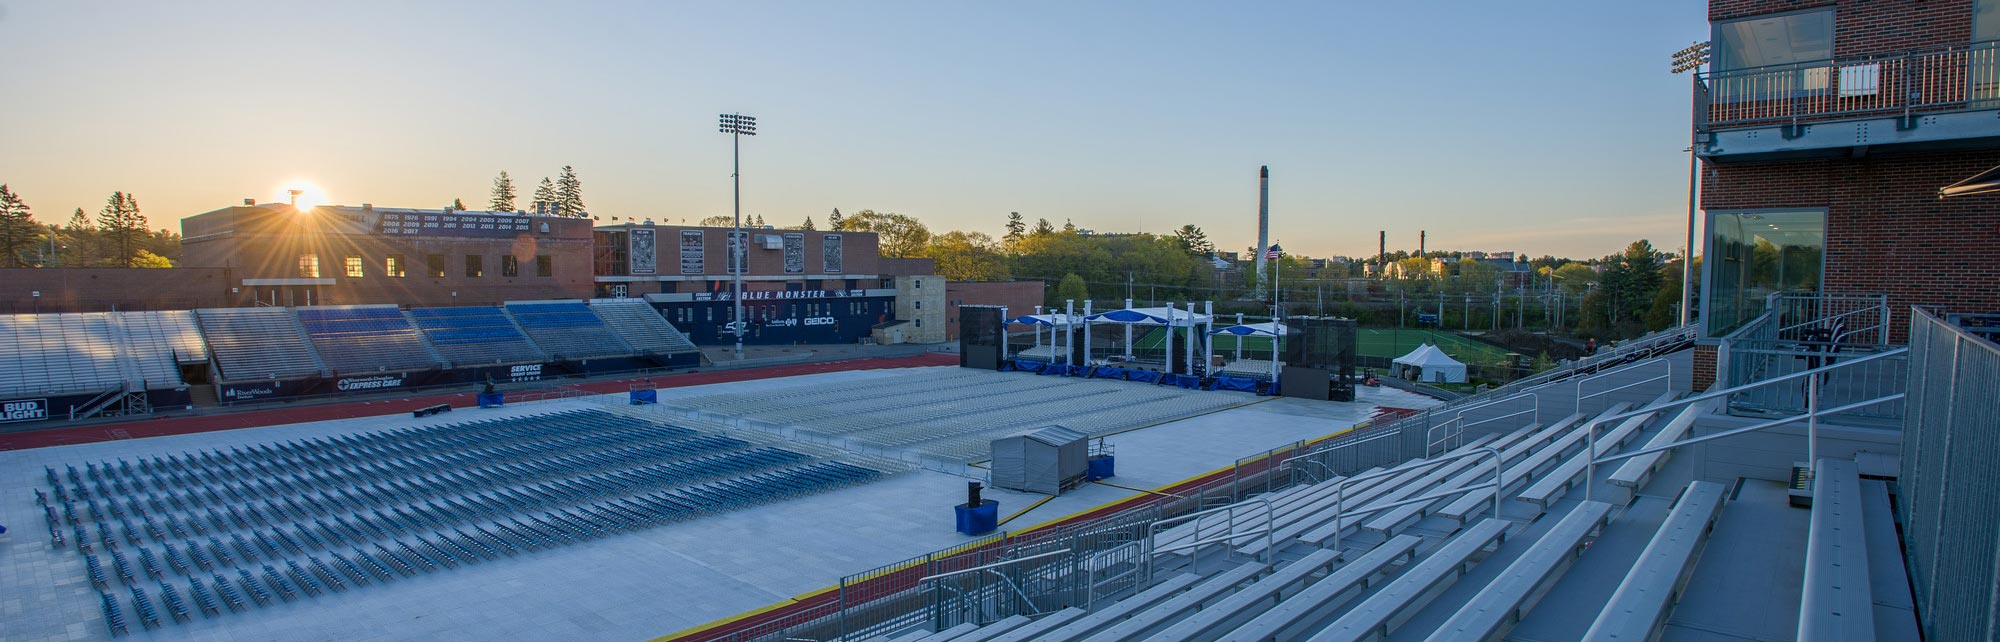 unh wildcat stadium being setup for commencement